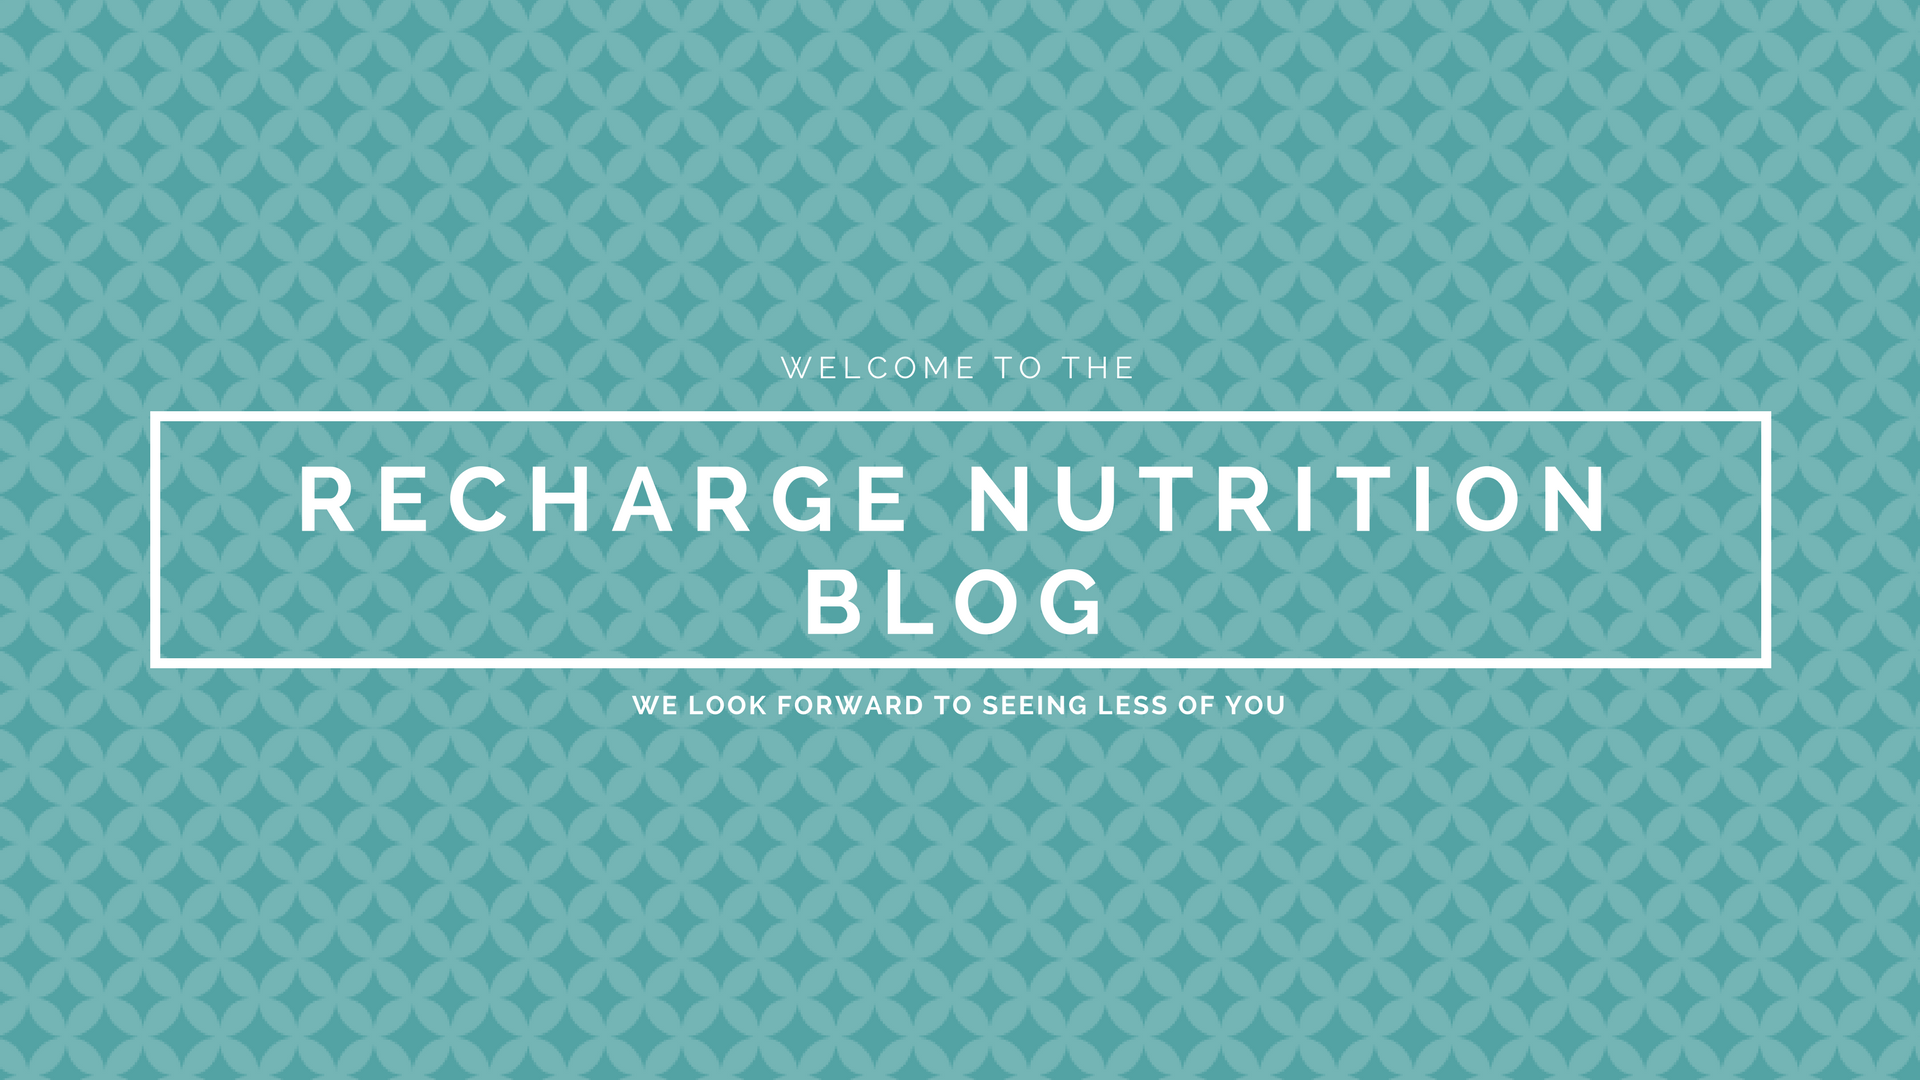 Recharge Nutrition Blog - Header (Teal Pattern)